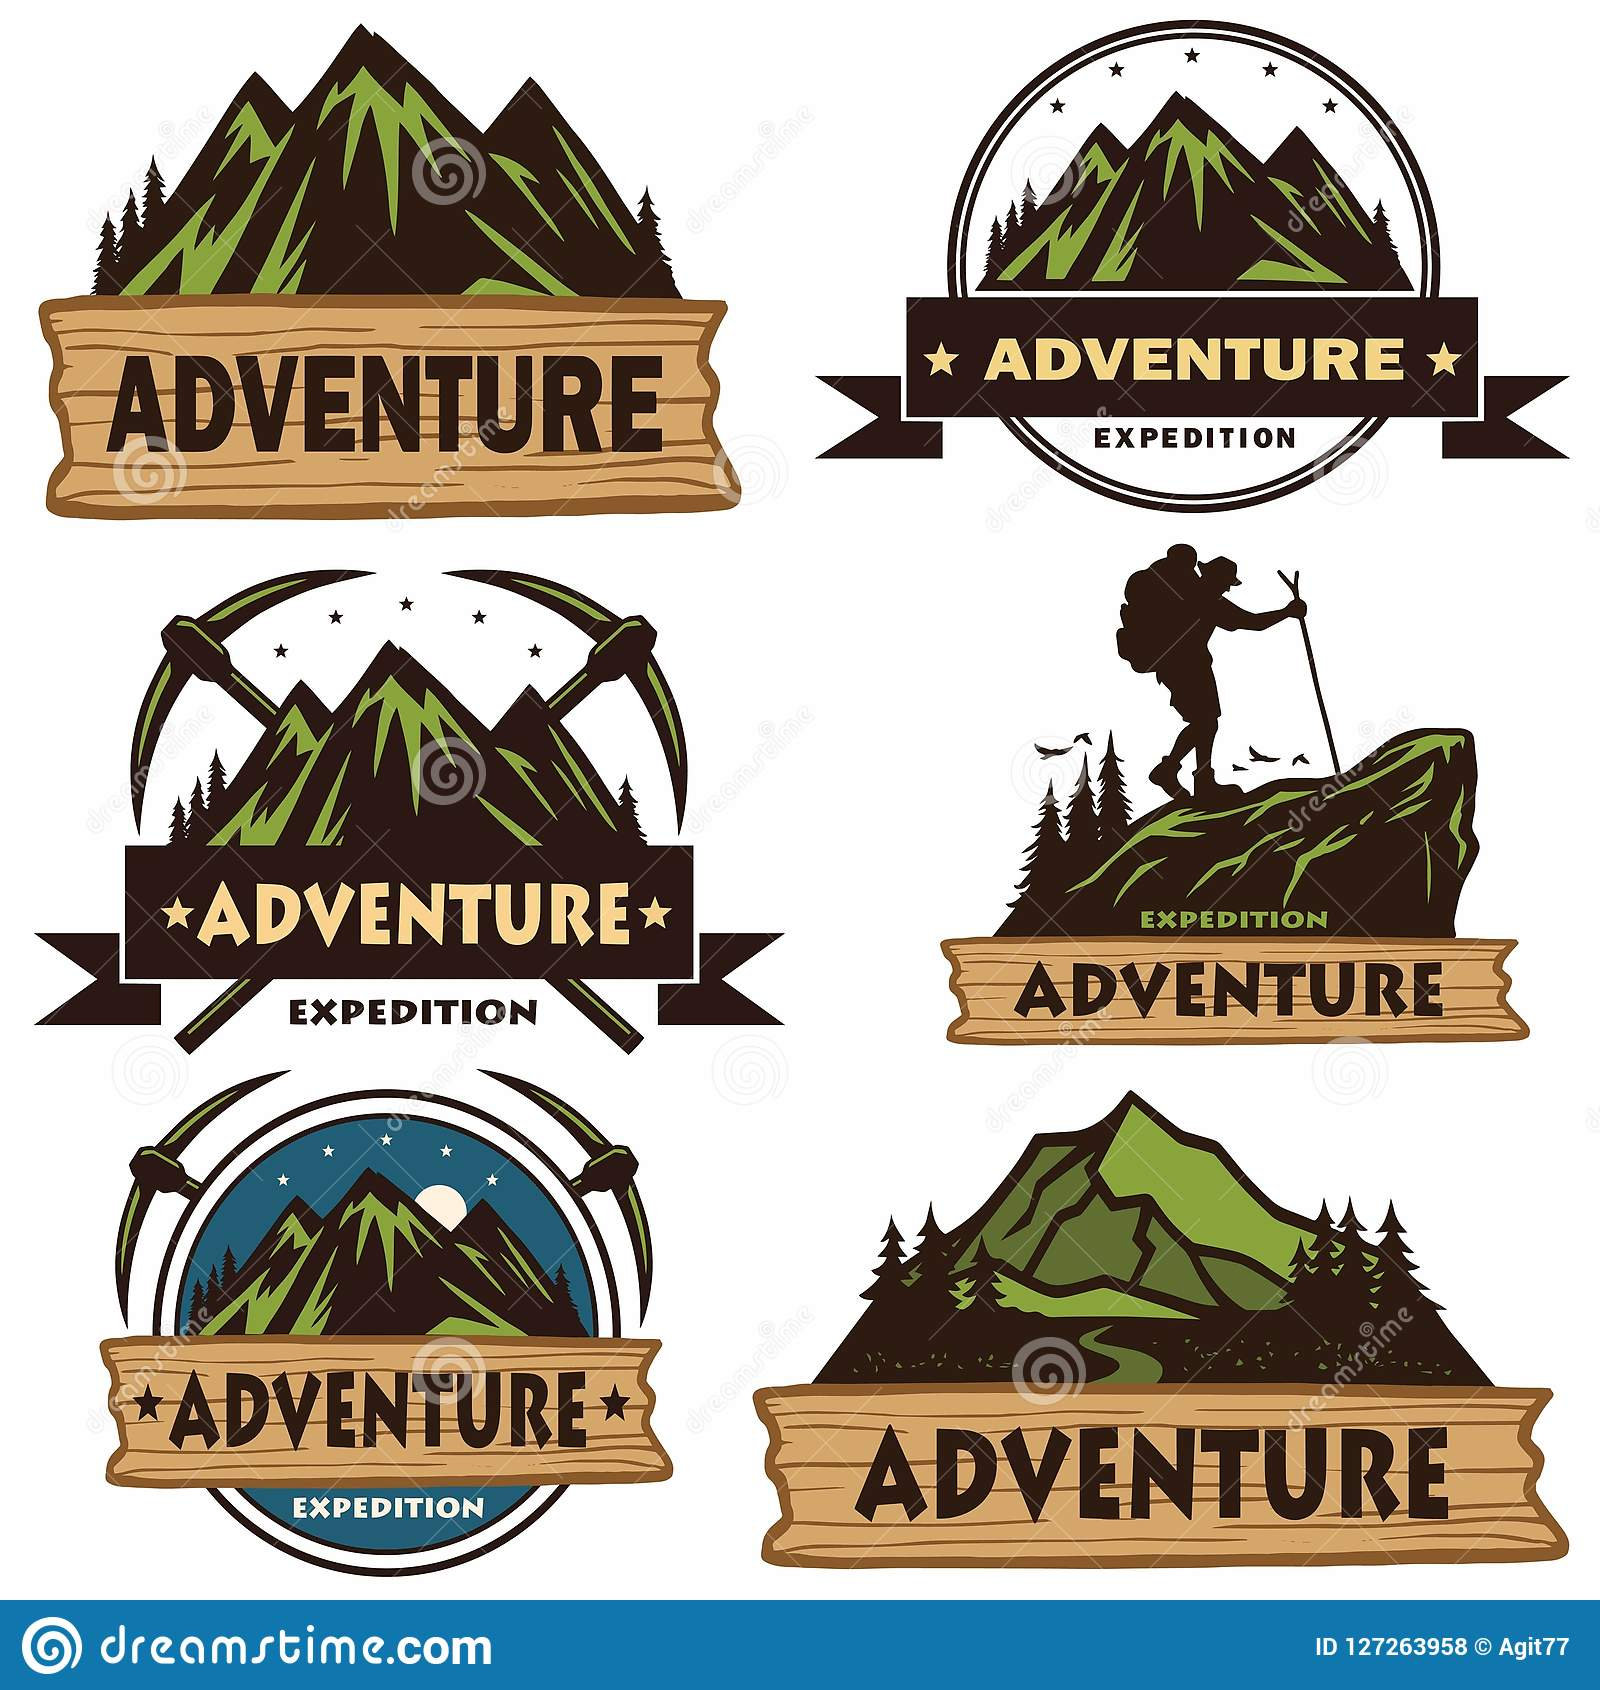 set of camping logos  templates  vector design elements  outdoor adventure mountains and forest